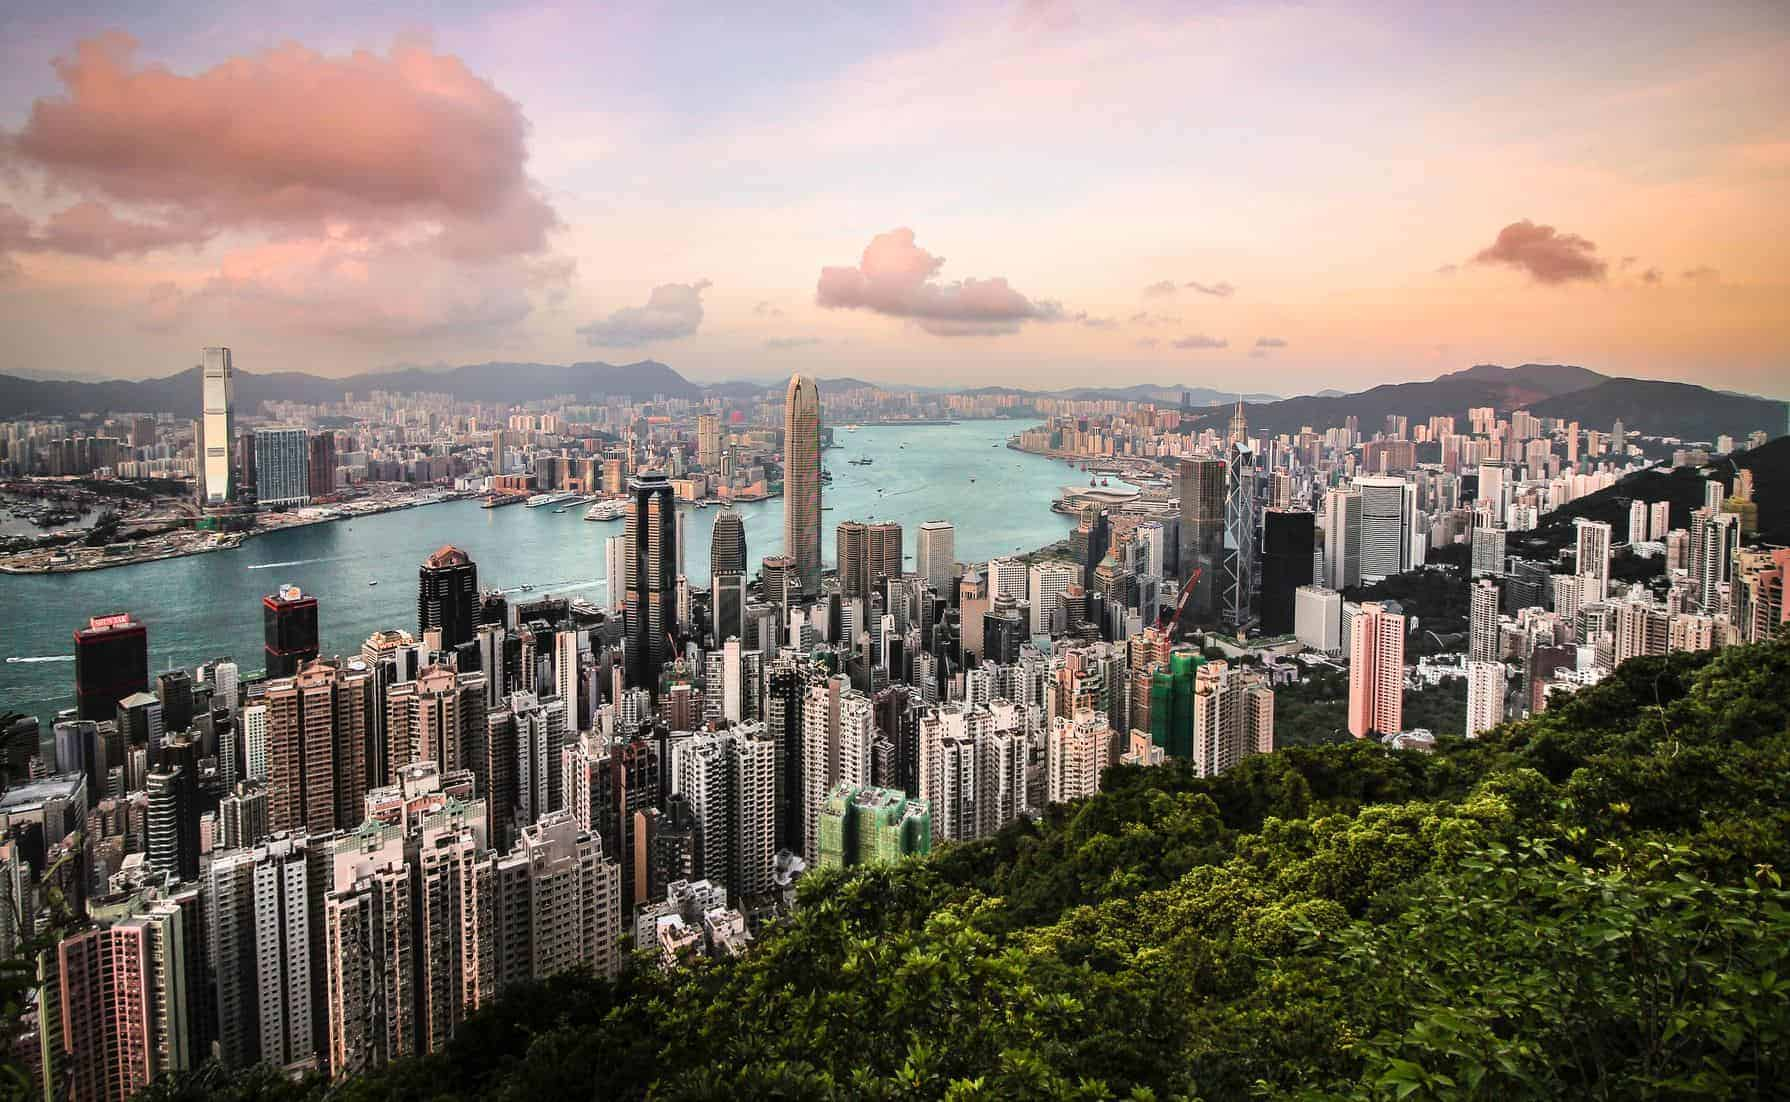 The spectacular sprawl of Hong Kong by Florian Wehde.